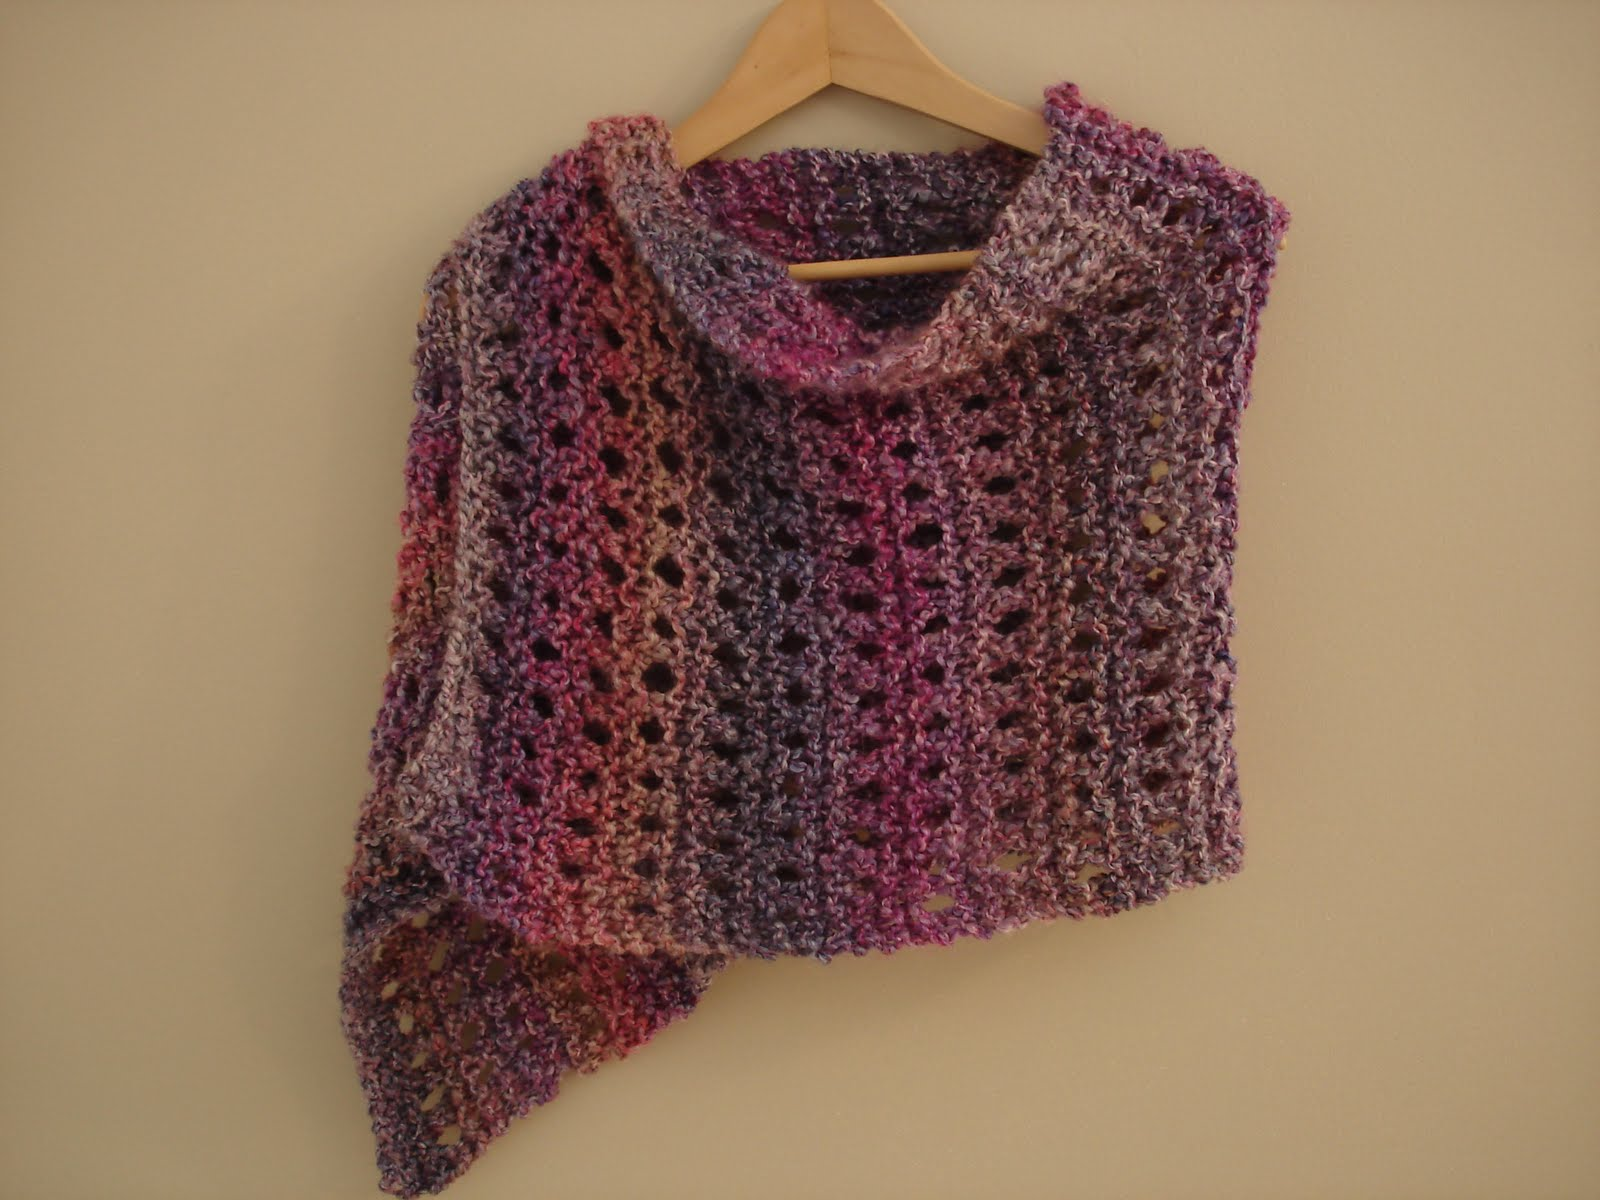 Prayer Shawl Patterns Knitting Free : Fiber Flux: Free Knitting Pattern...A Peaceful Shawl!